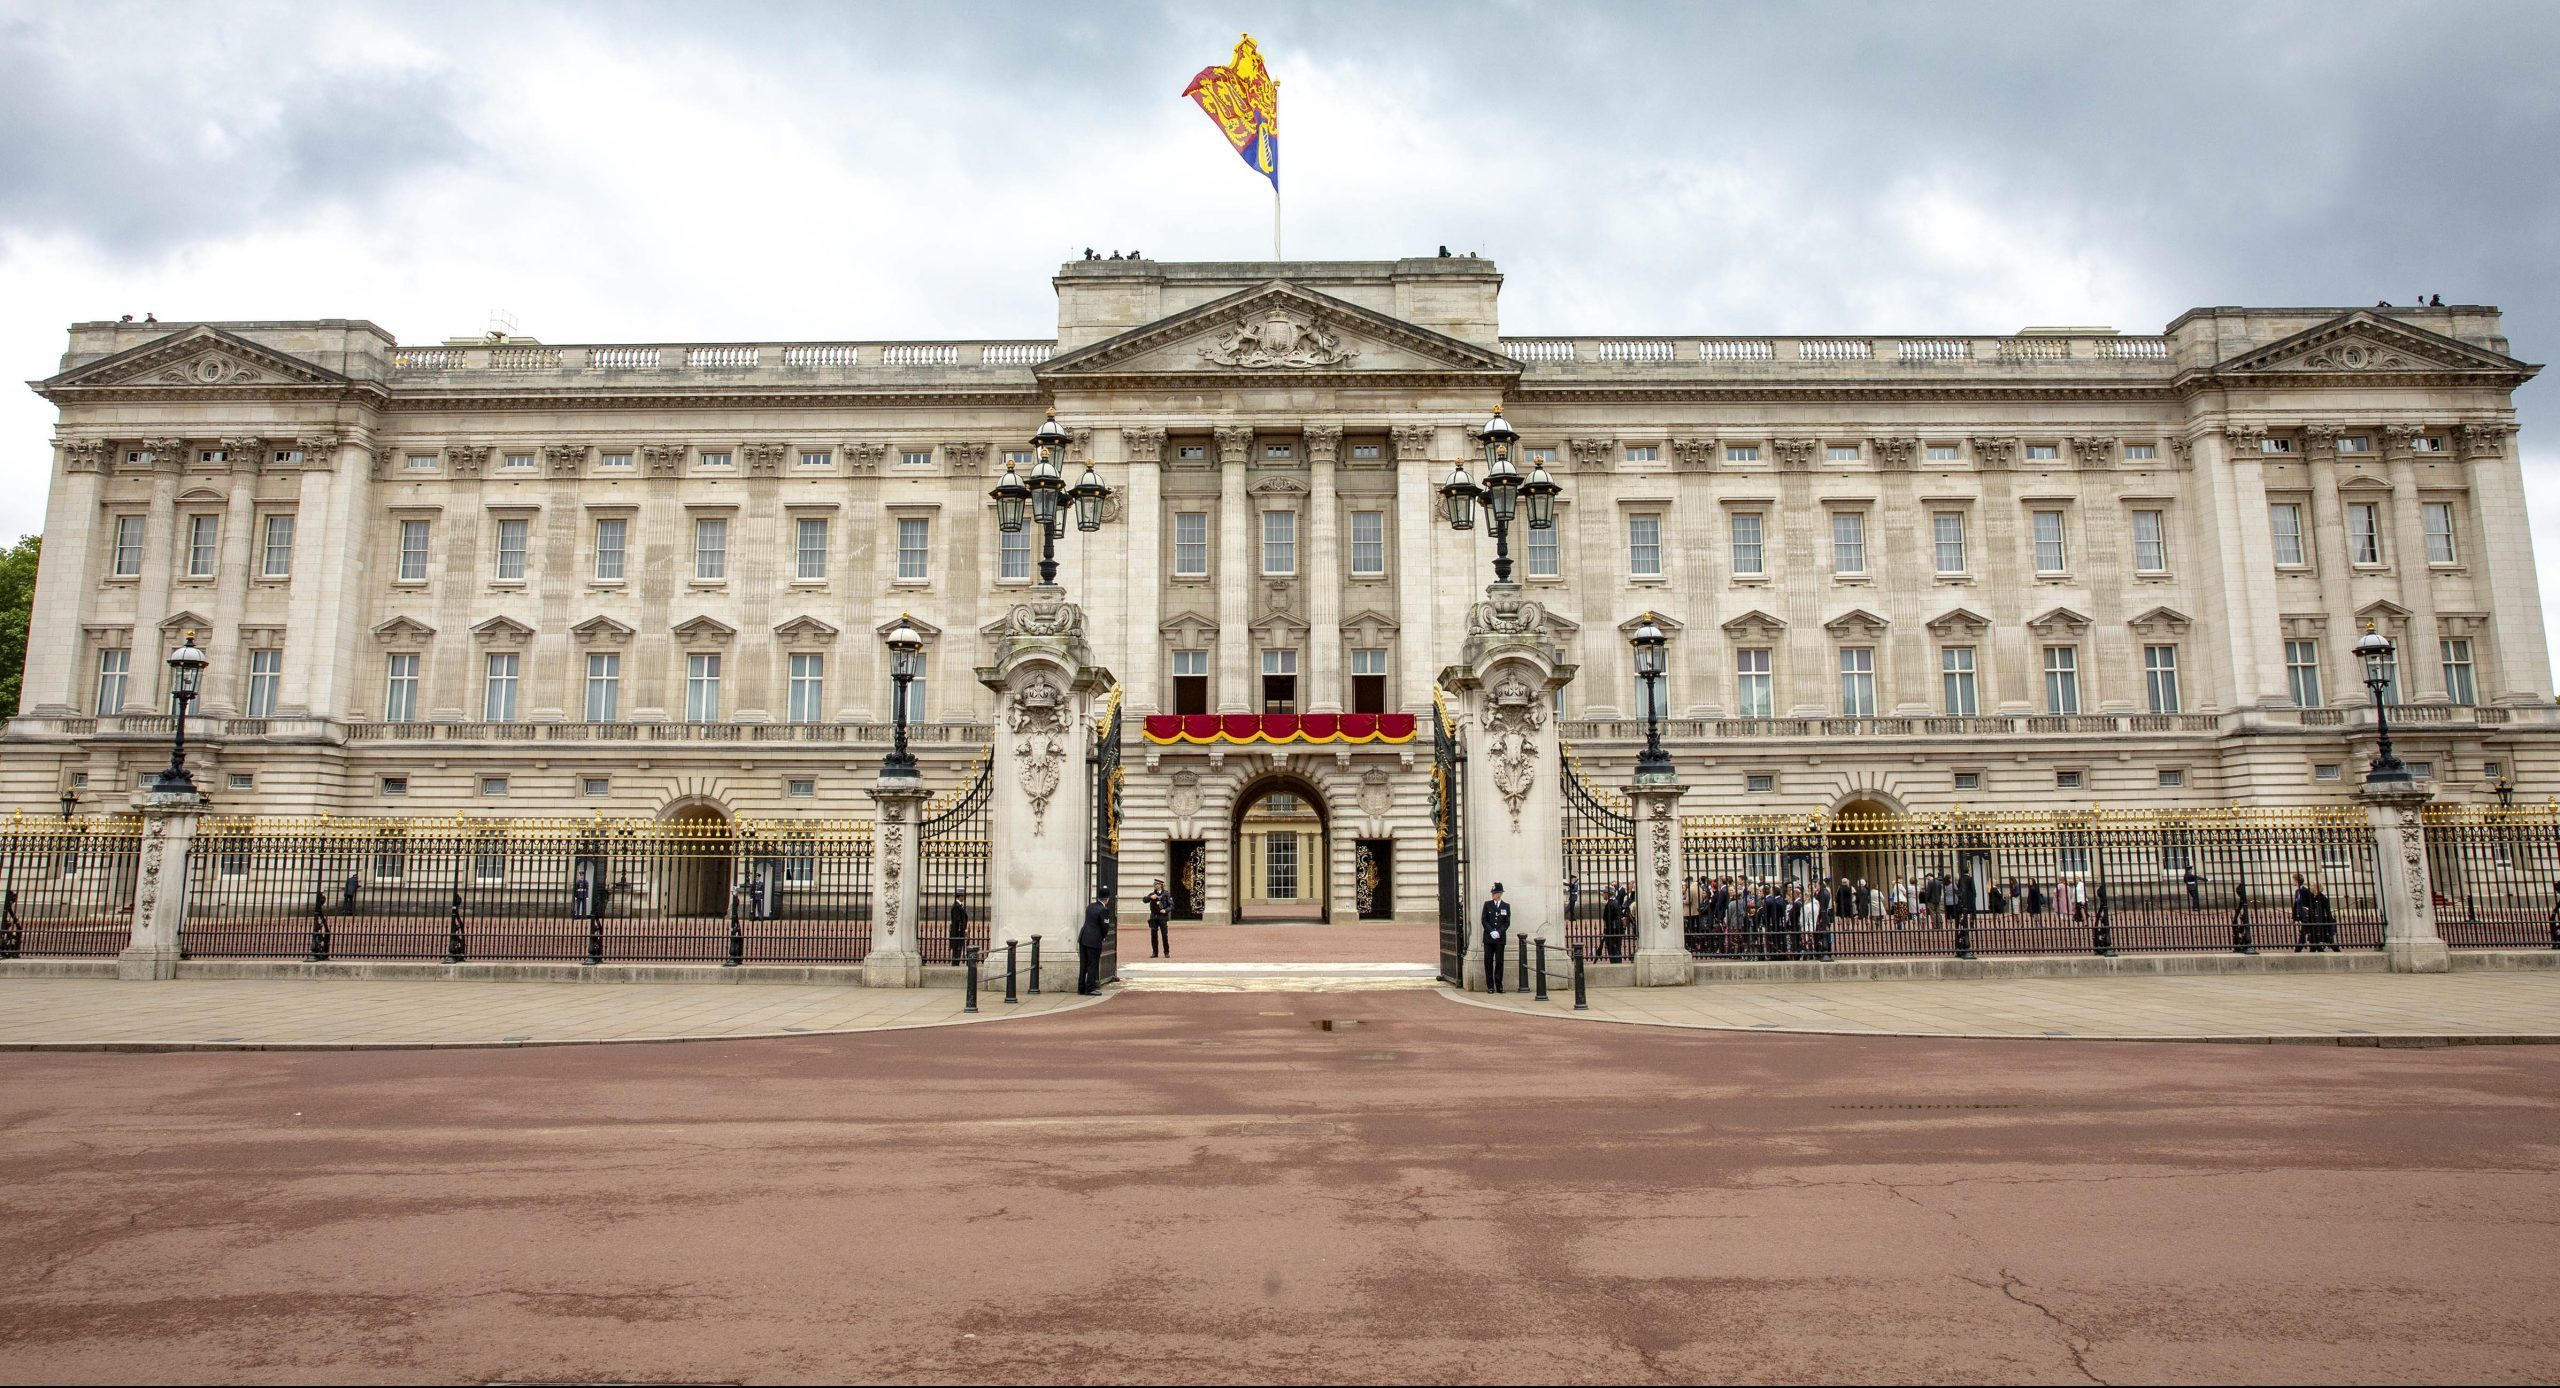 Buckingham Palace confirms changes to Queen's schedule amid coronavirus fears